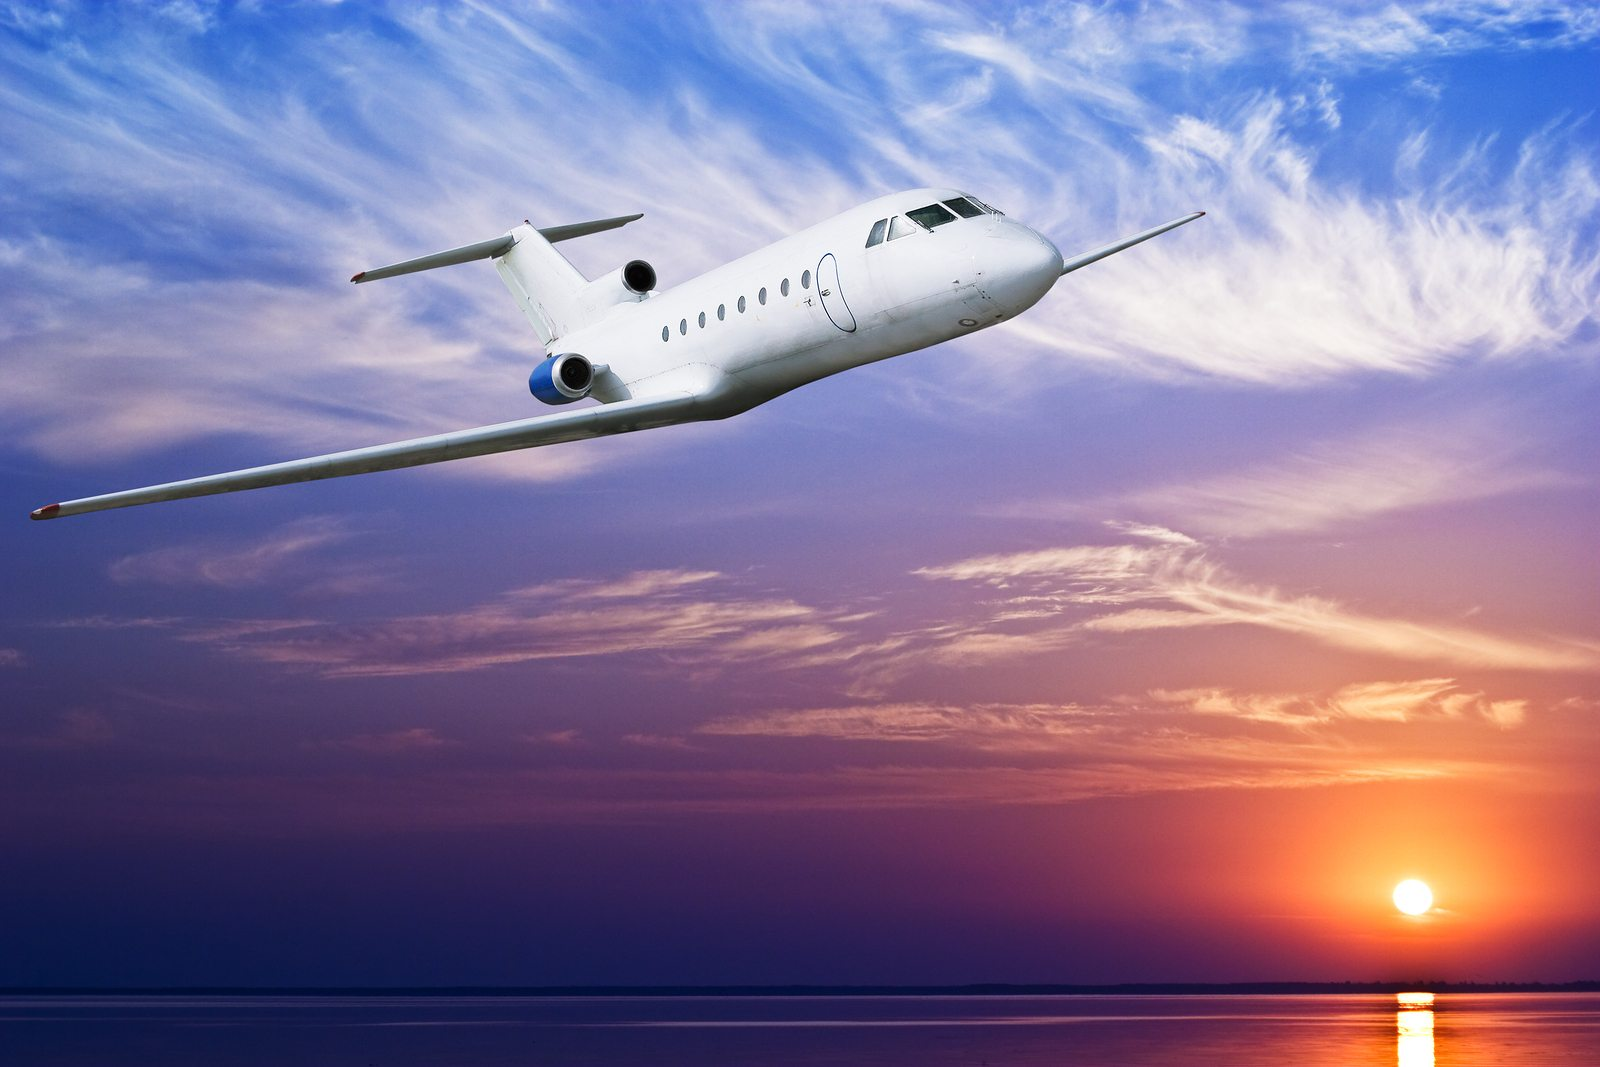 owning an airplane worth the money